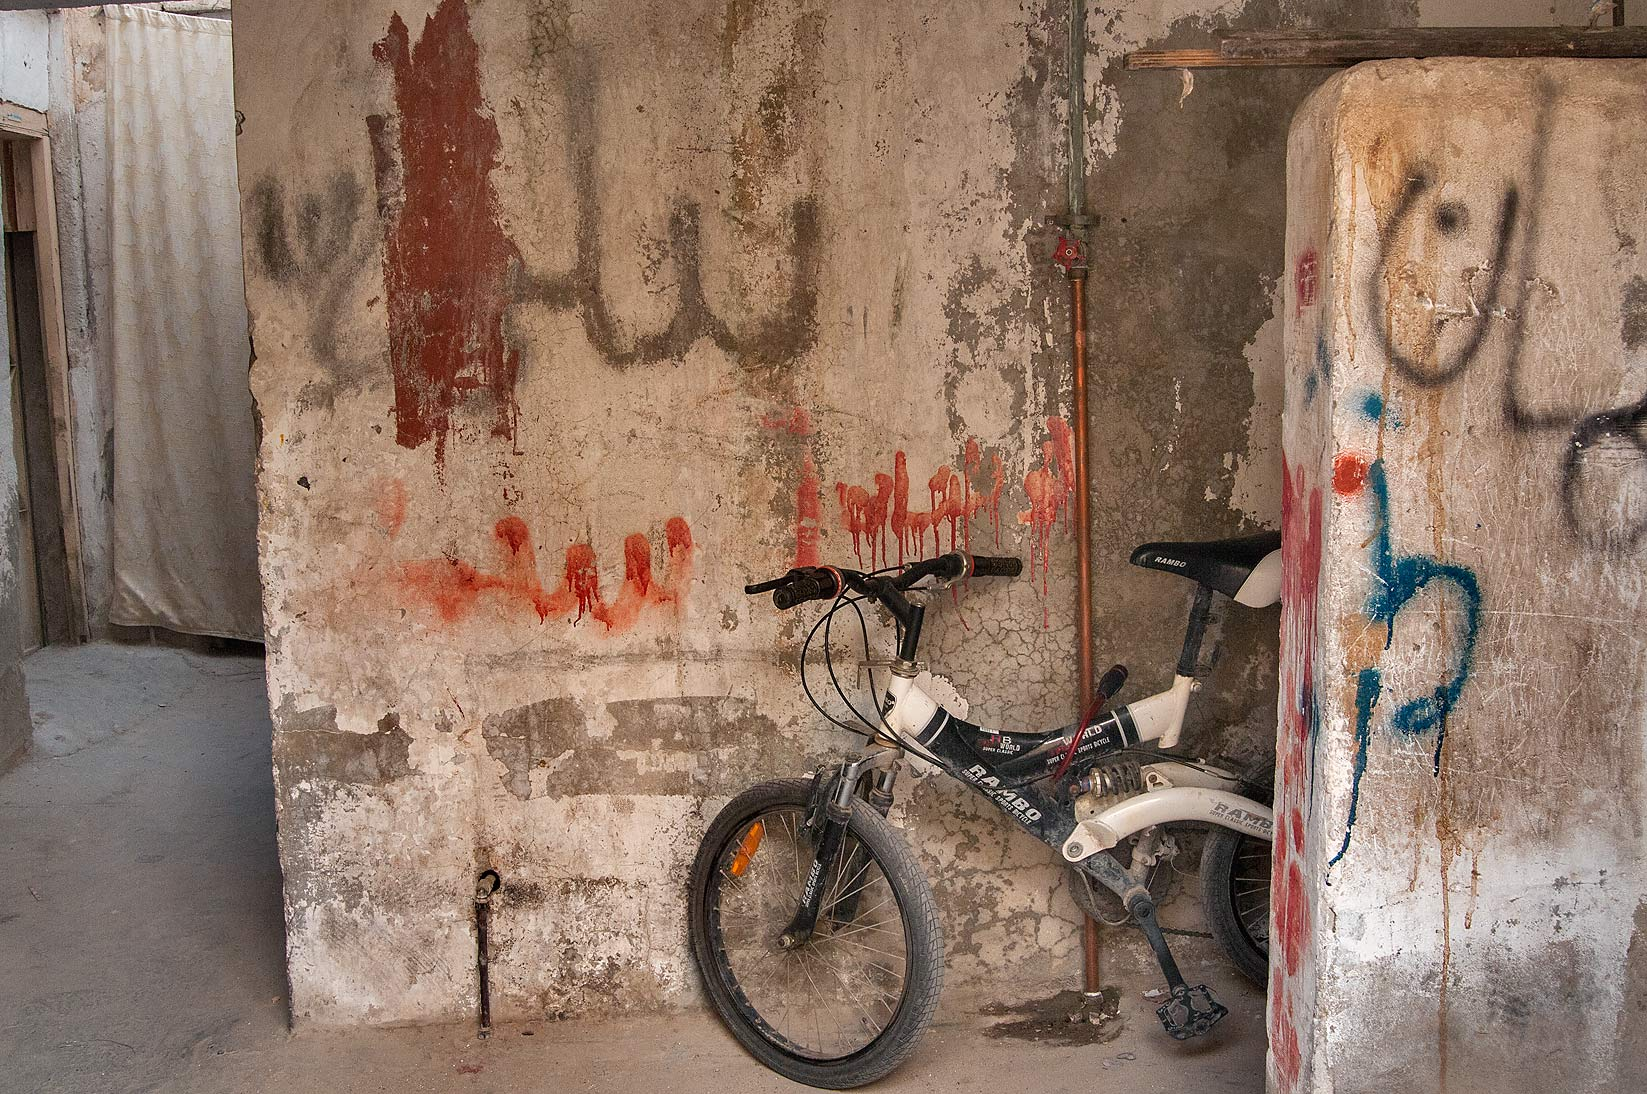 Bicycle parked in worker's apartment near Al Jassasiya St., Musheirib area. Doha, Qatar